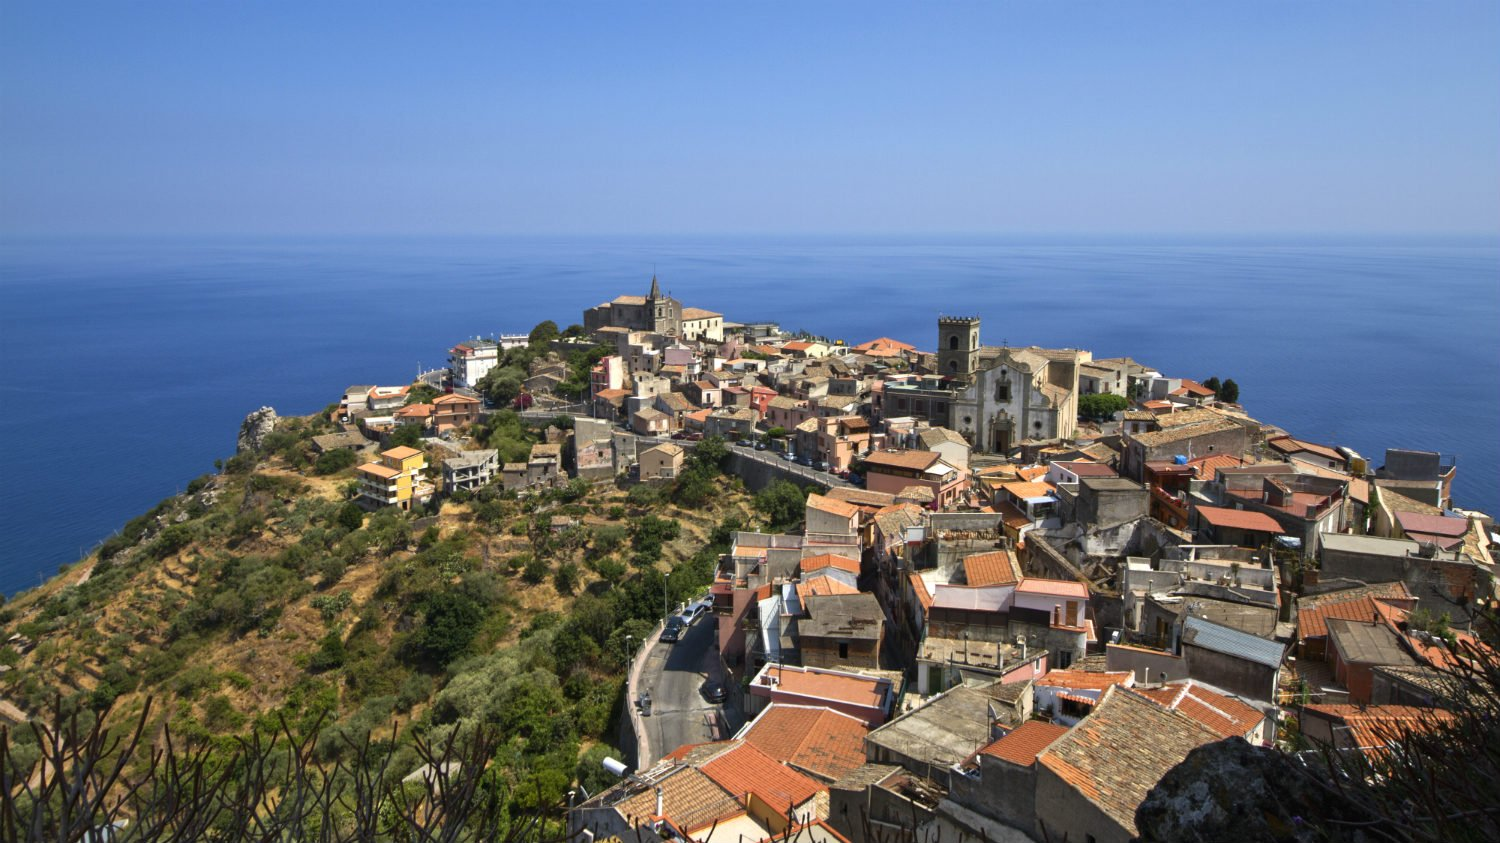 10 best Sicily day trips from around the island 2